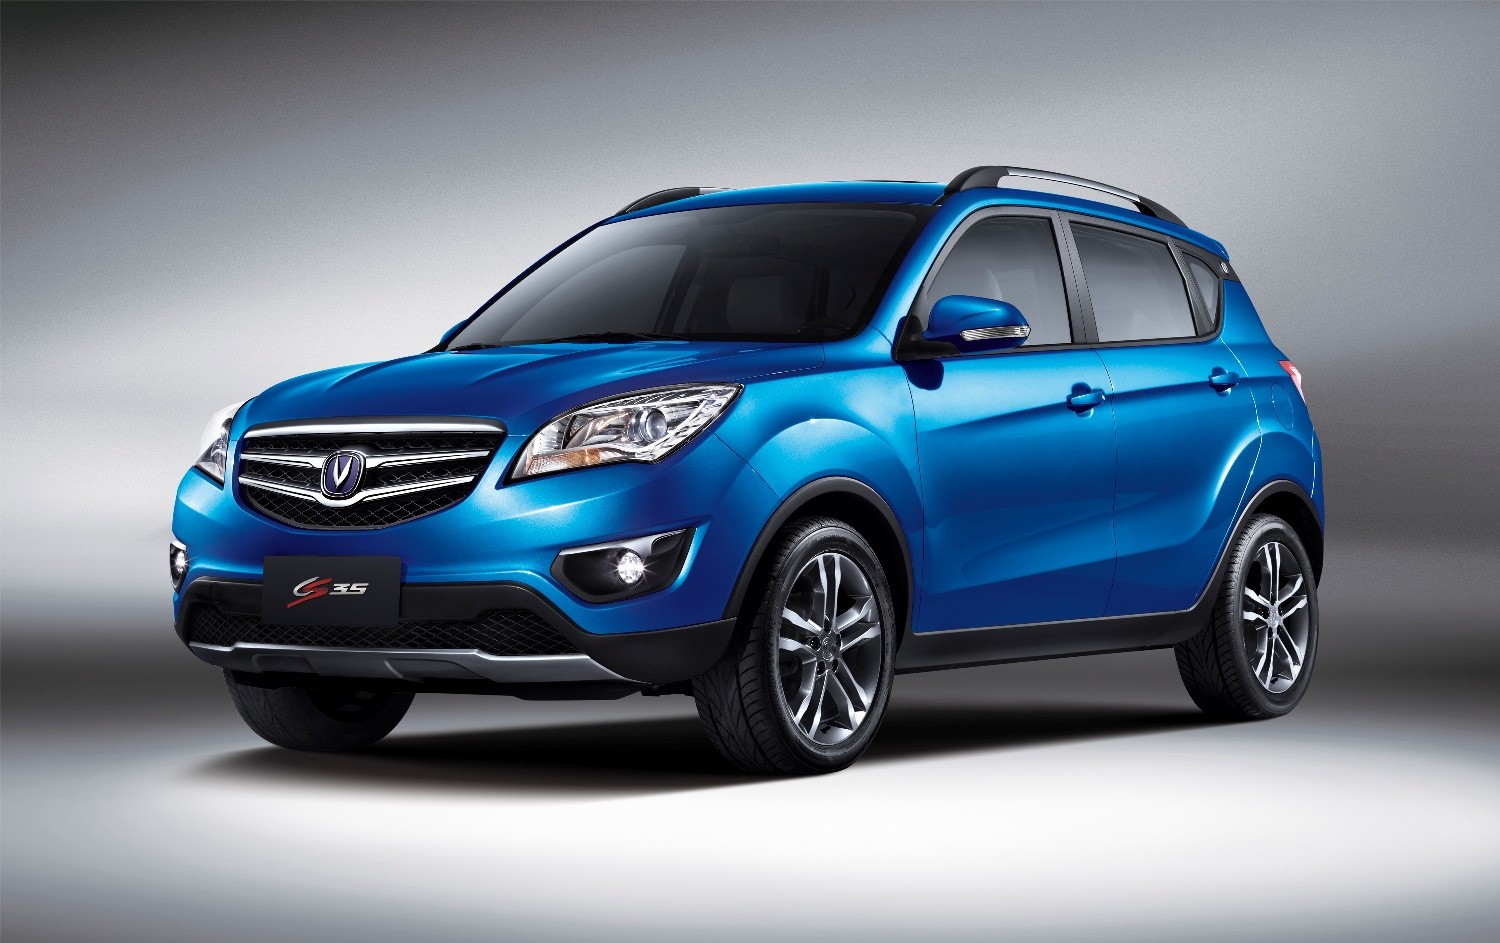 Changan Cs35 Price In Saudi Arabia New Changan Cs35